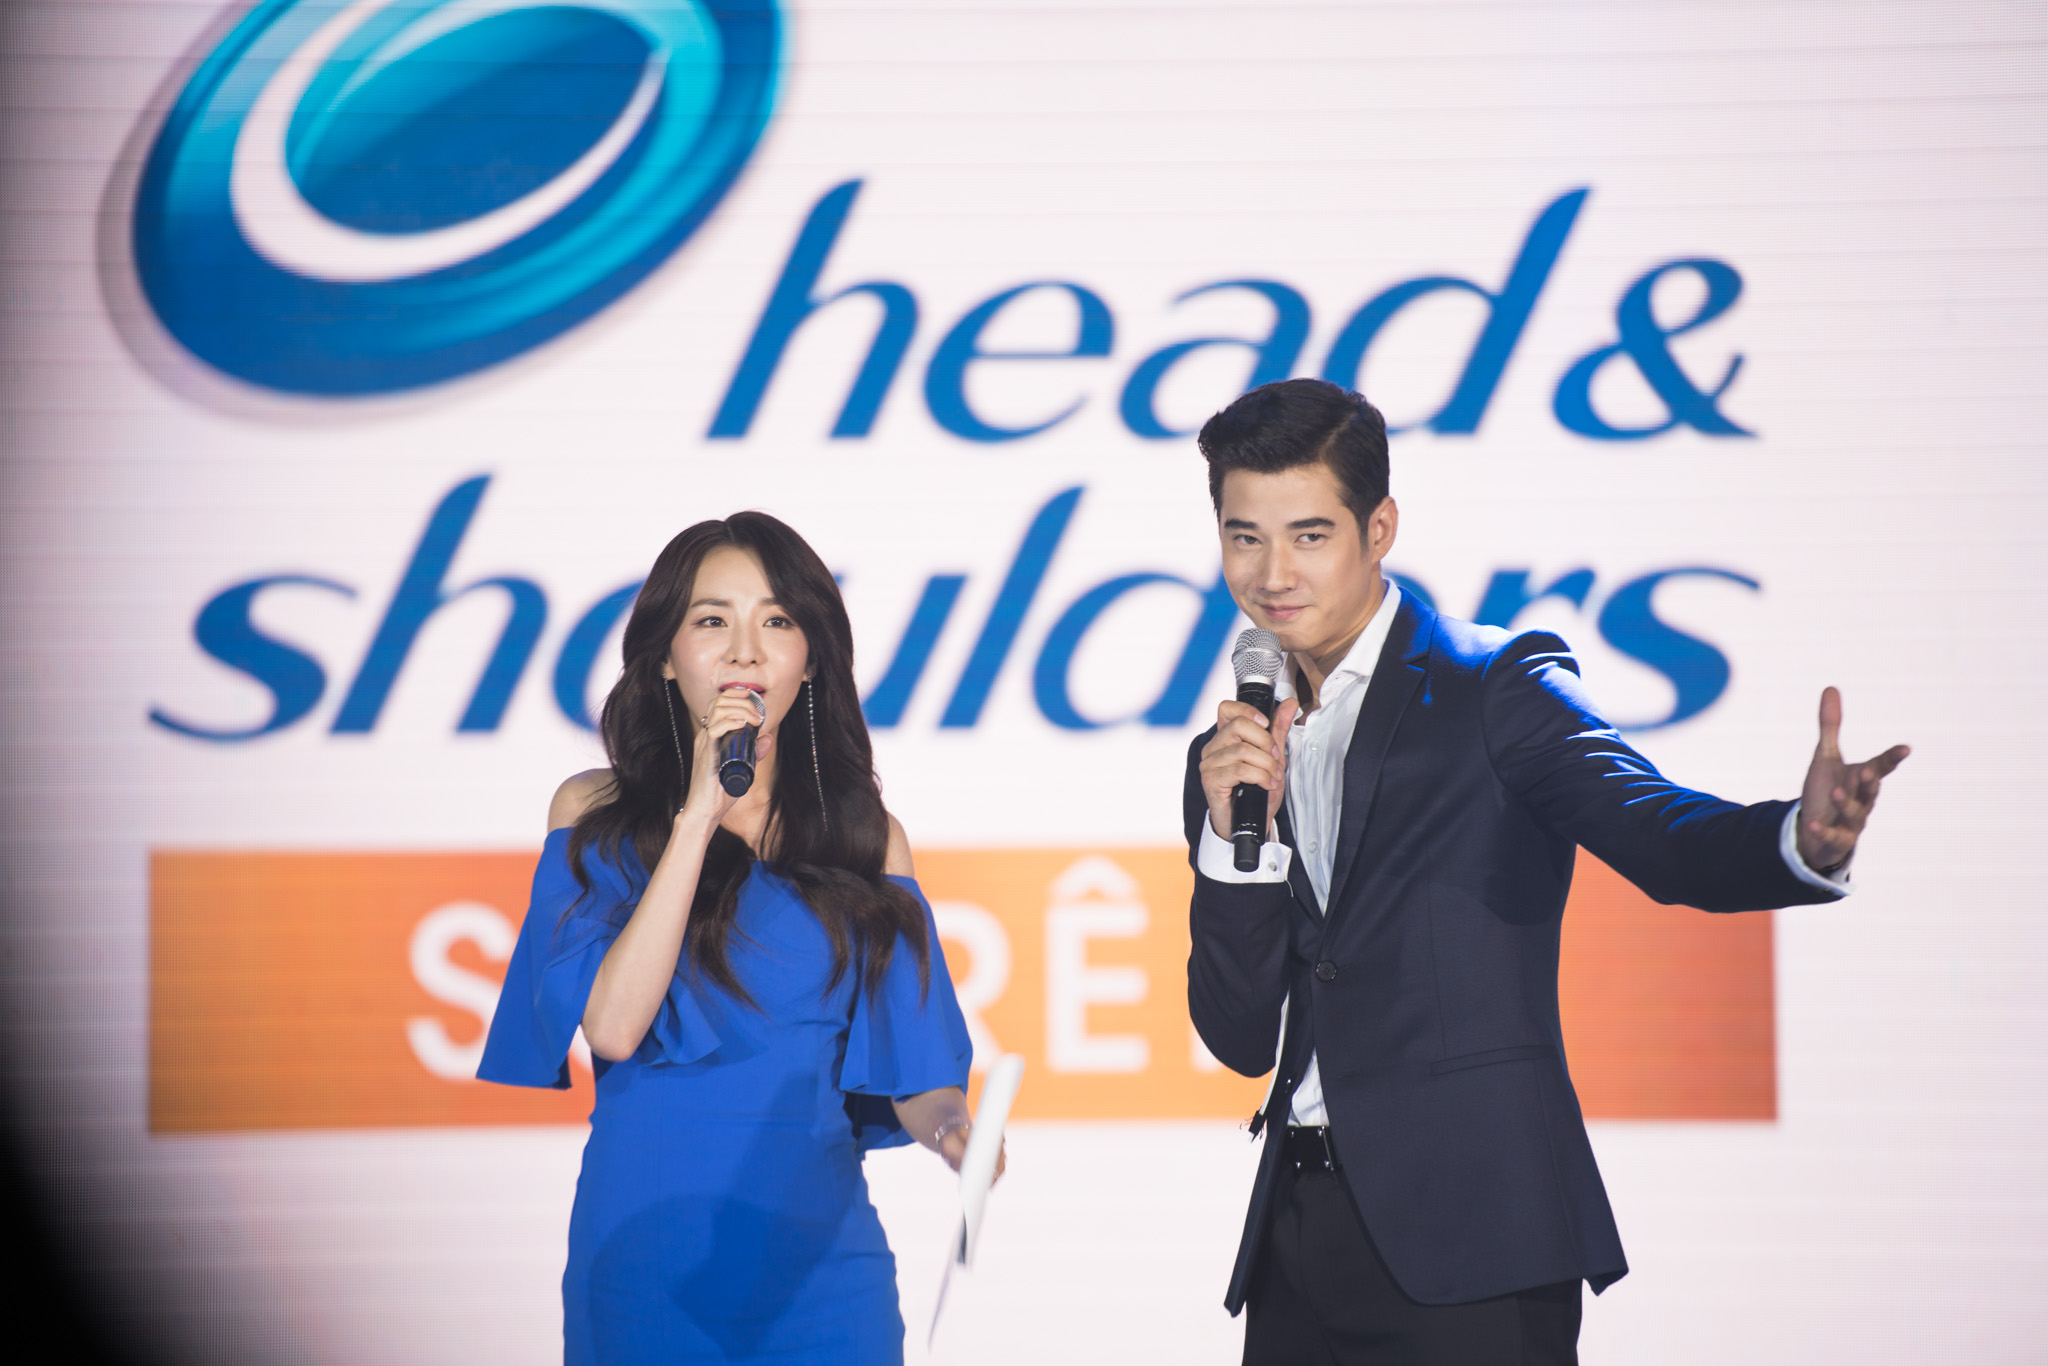 Sandara and Mario are the Asian ambassadors of the brand.